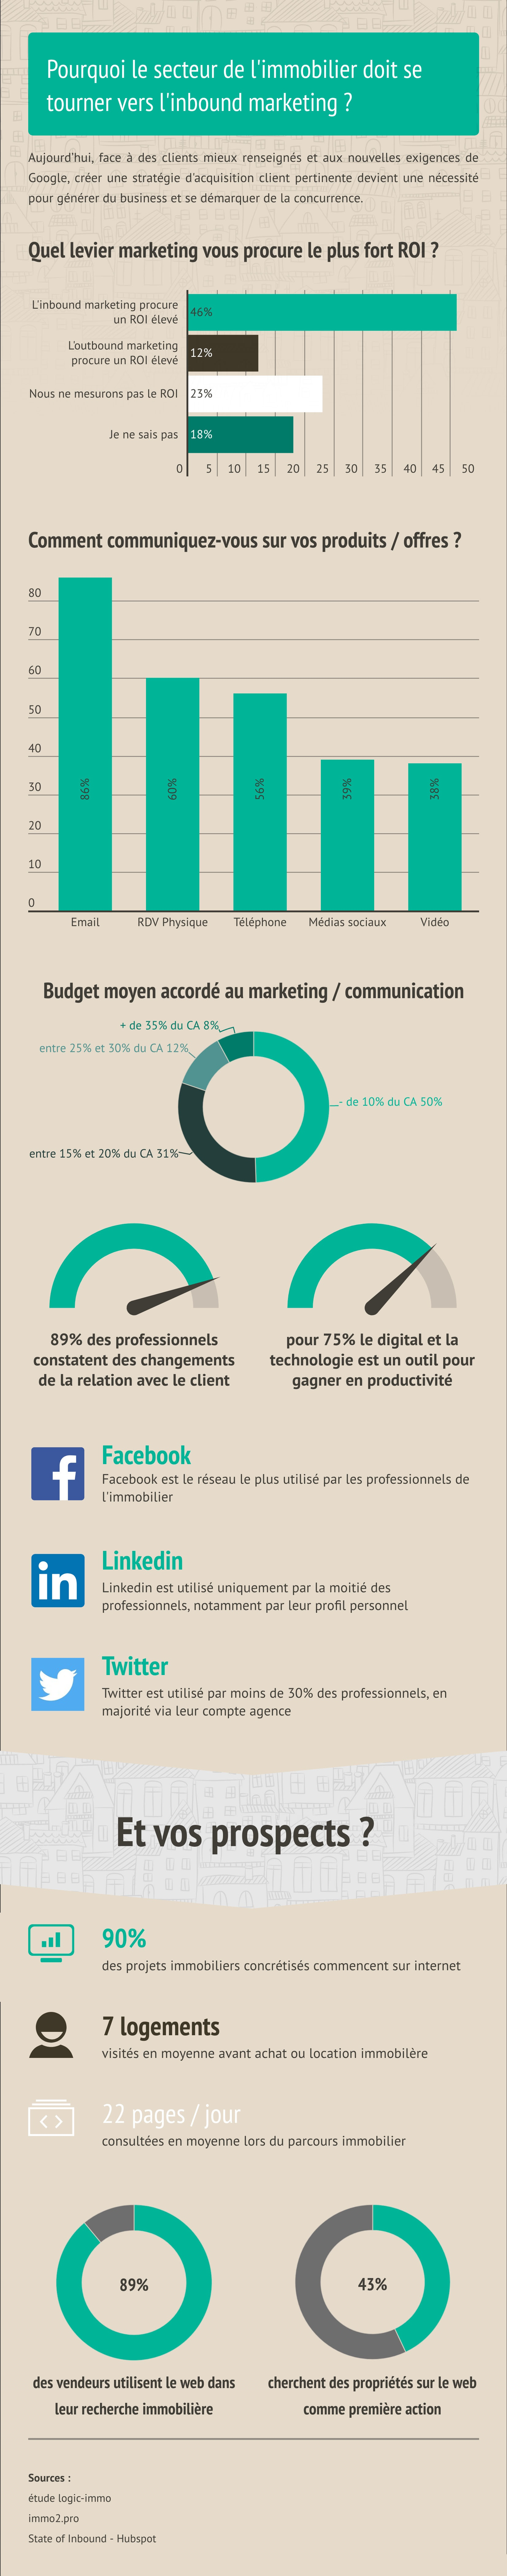 infographie statistiques immobilier.jpg